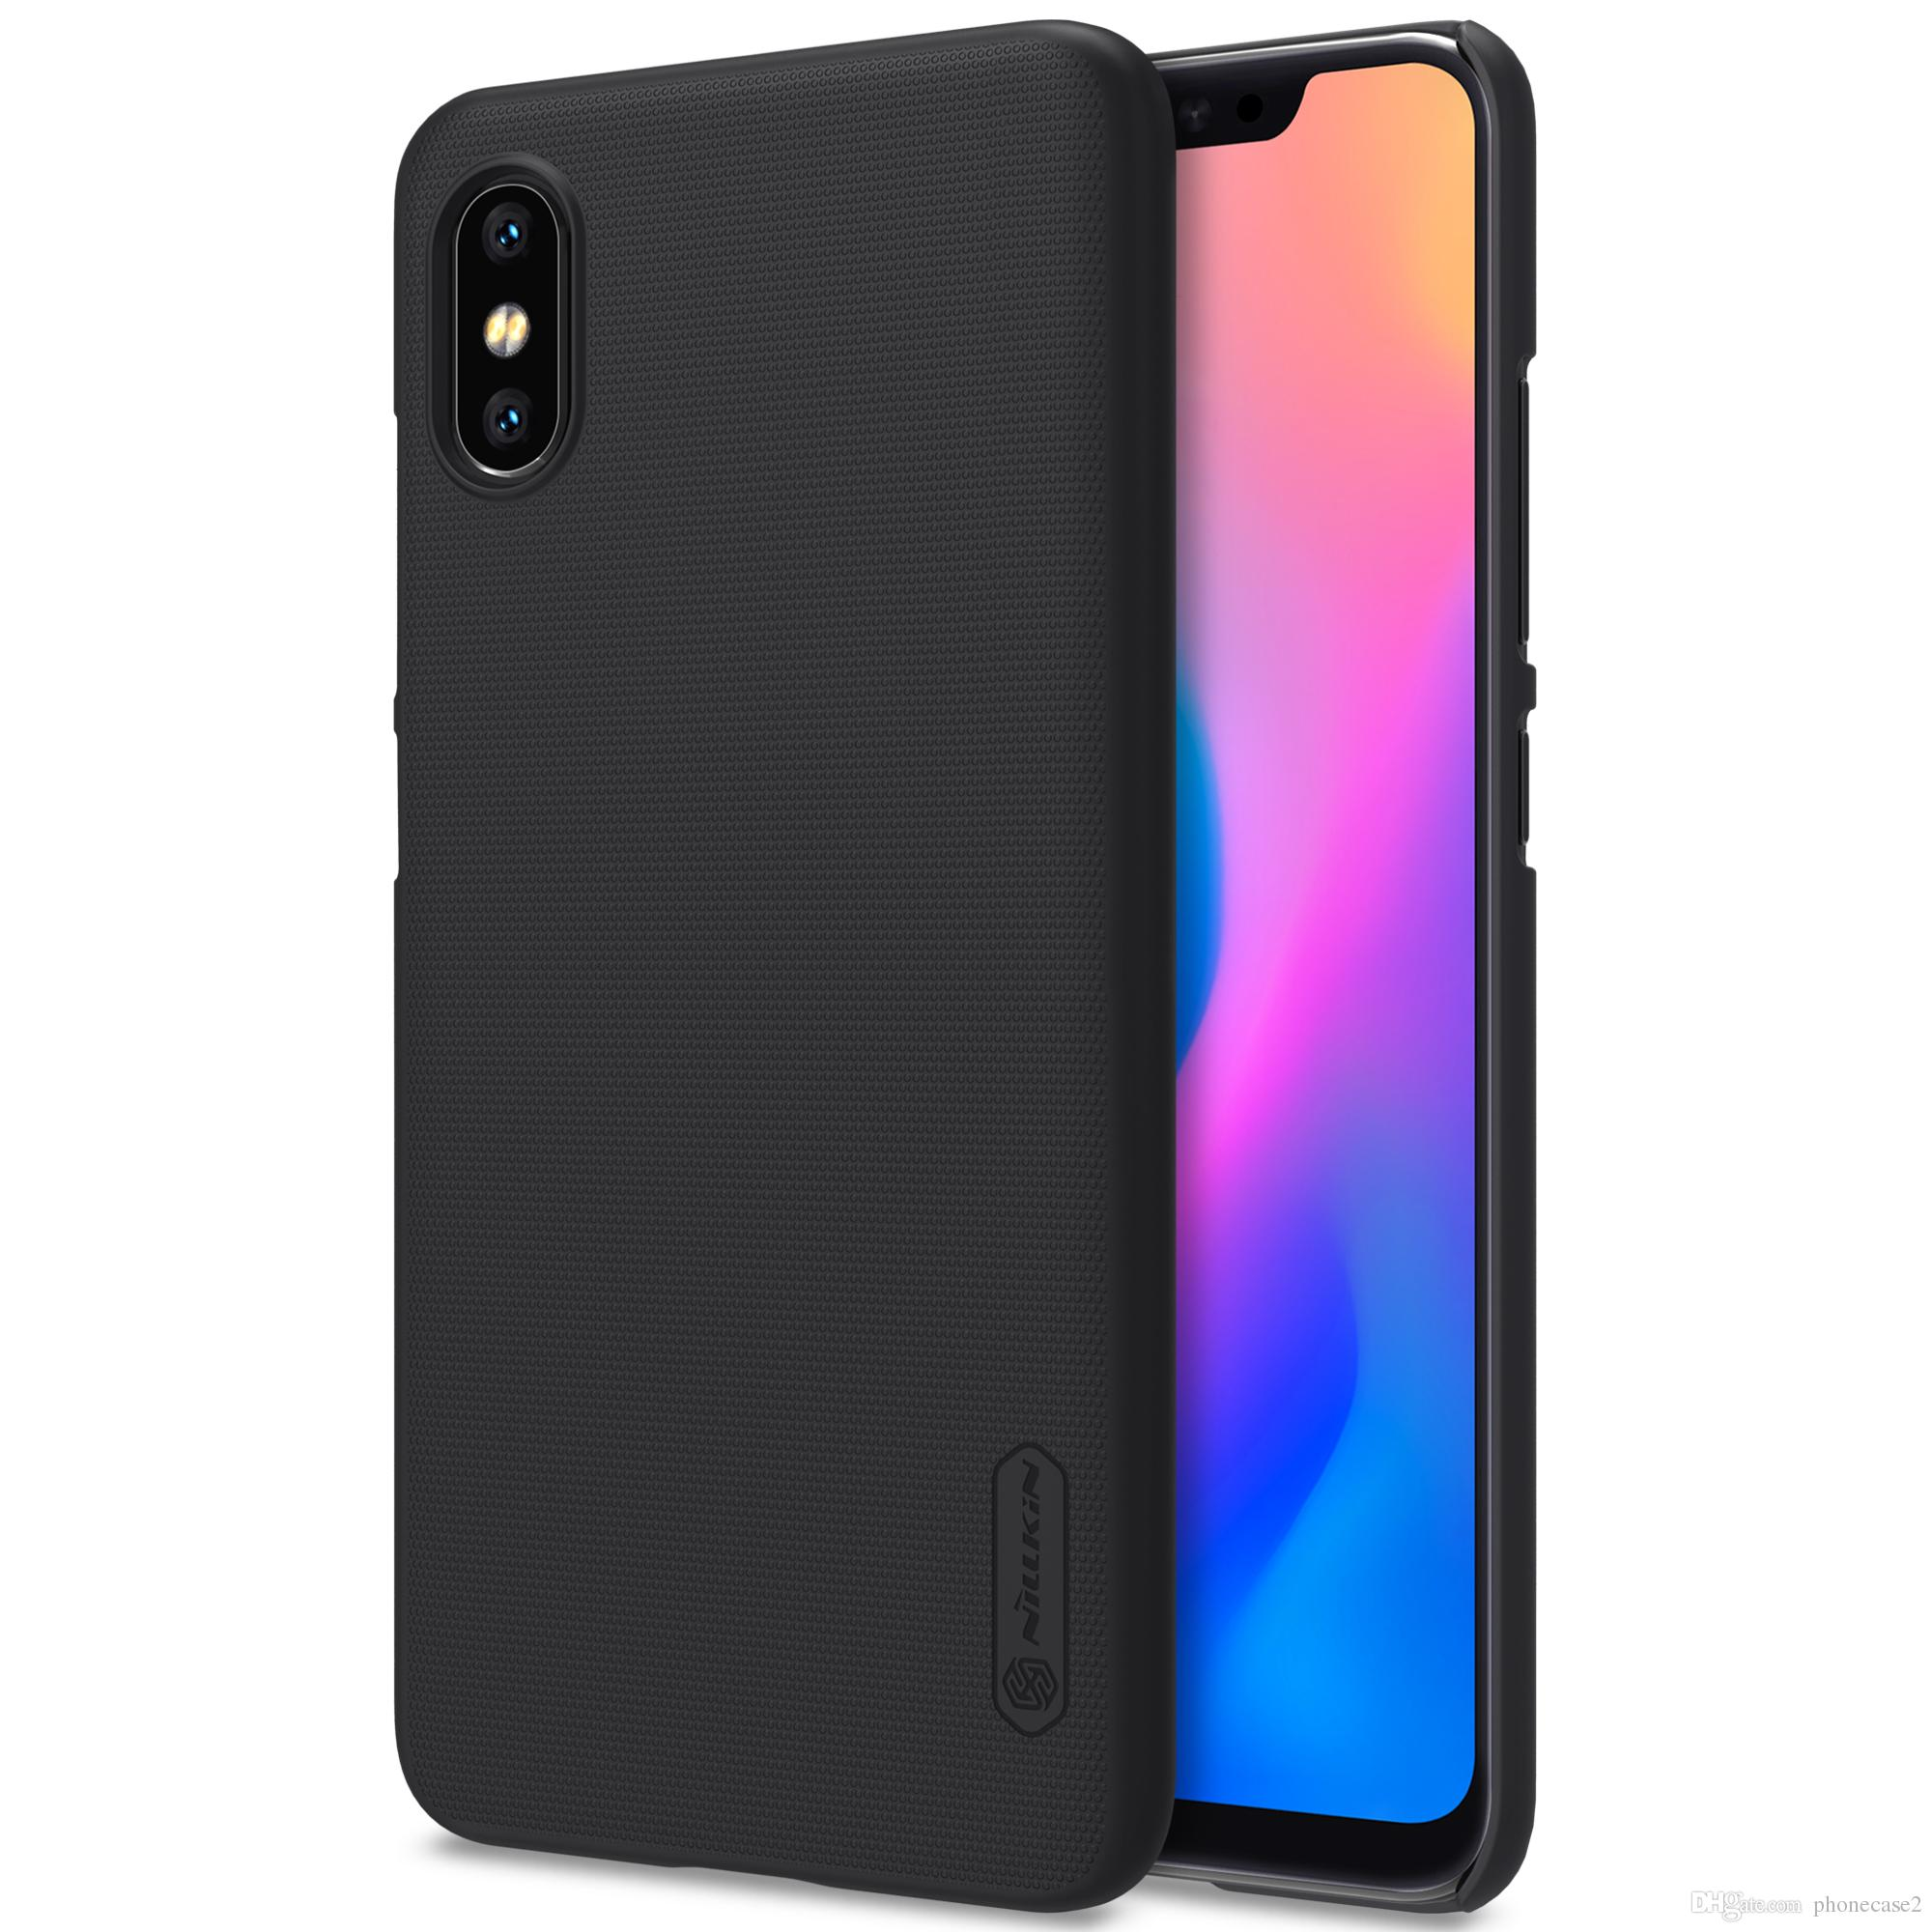 timeless design da8cd bd2ce Xiaomi mi8 explorer Case xiaomi mi 8 explorer Cover NILLKIN Super Frosted  Shield matte hard back cover with free screen protector